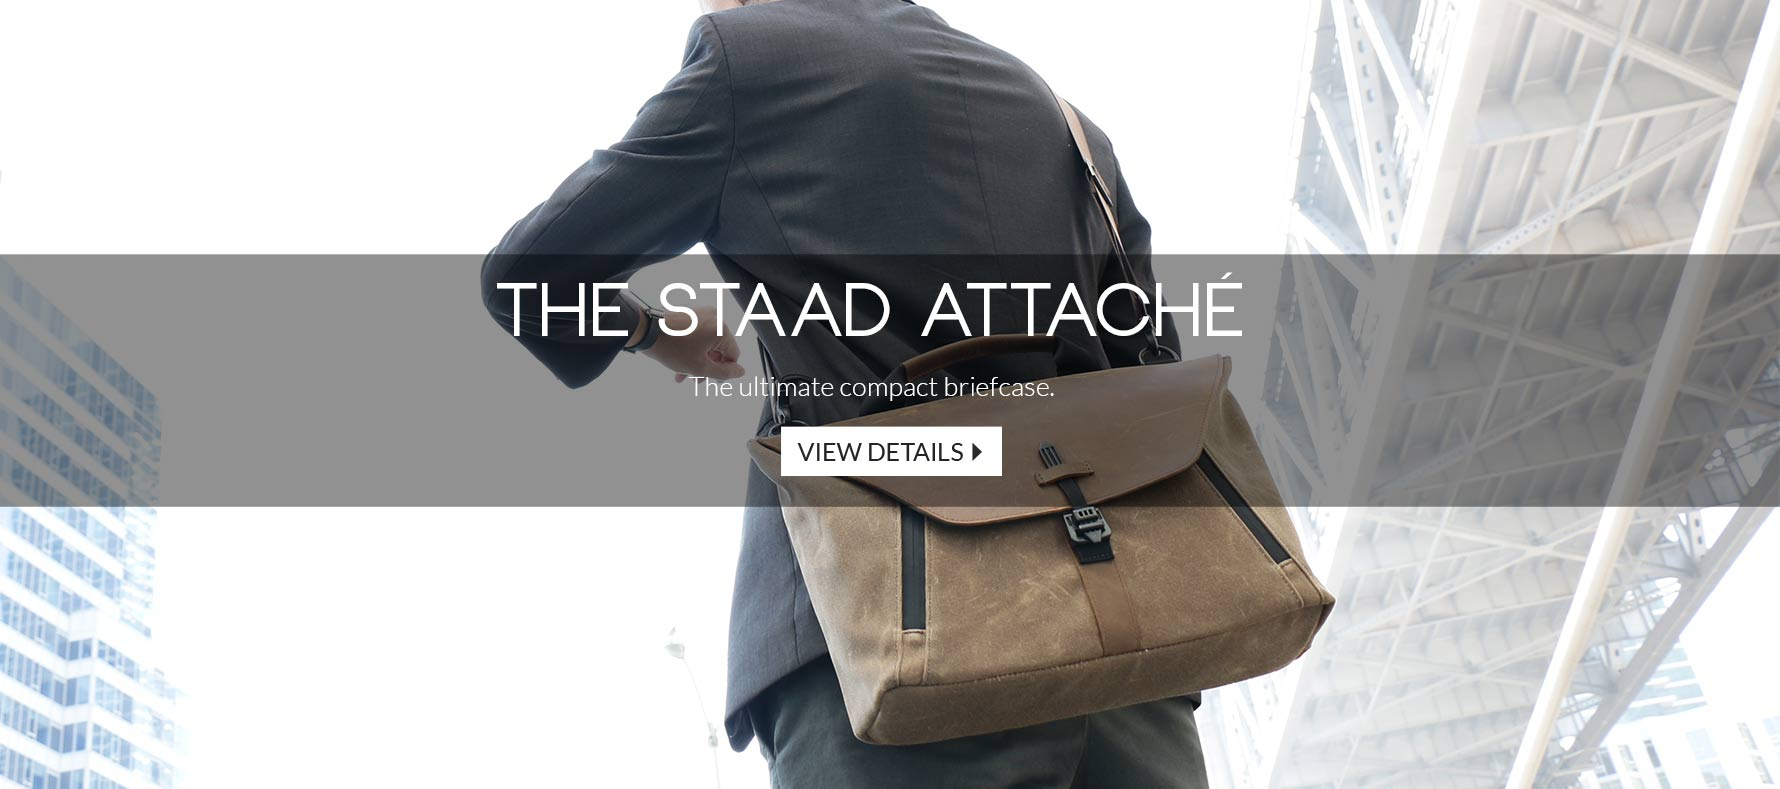 The Staad Attache - The ultimate compact briefcase